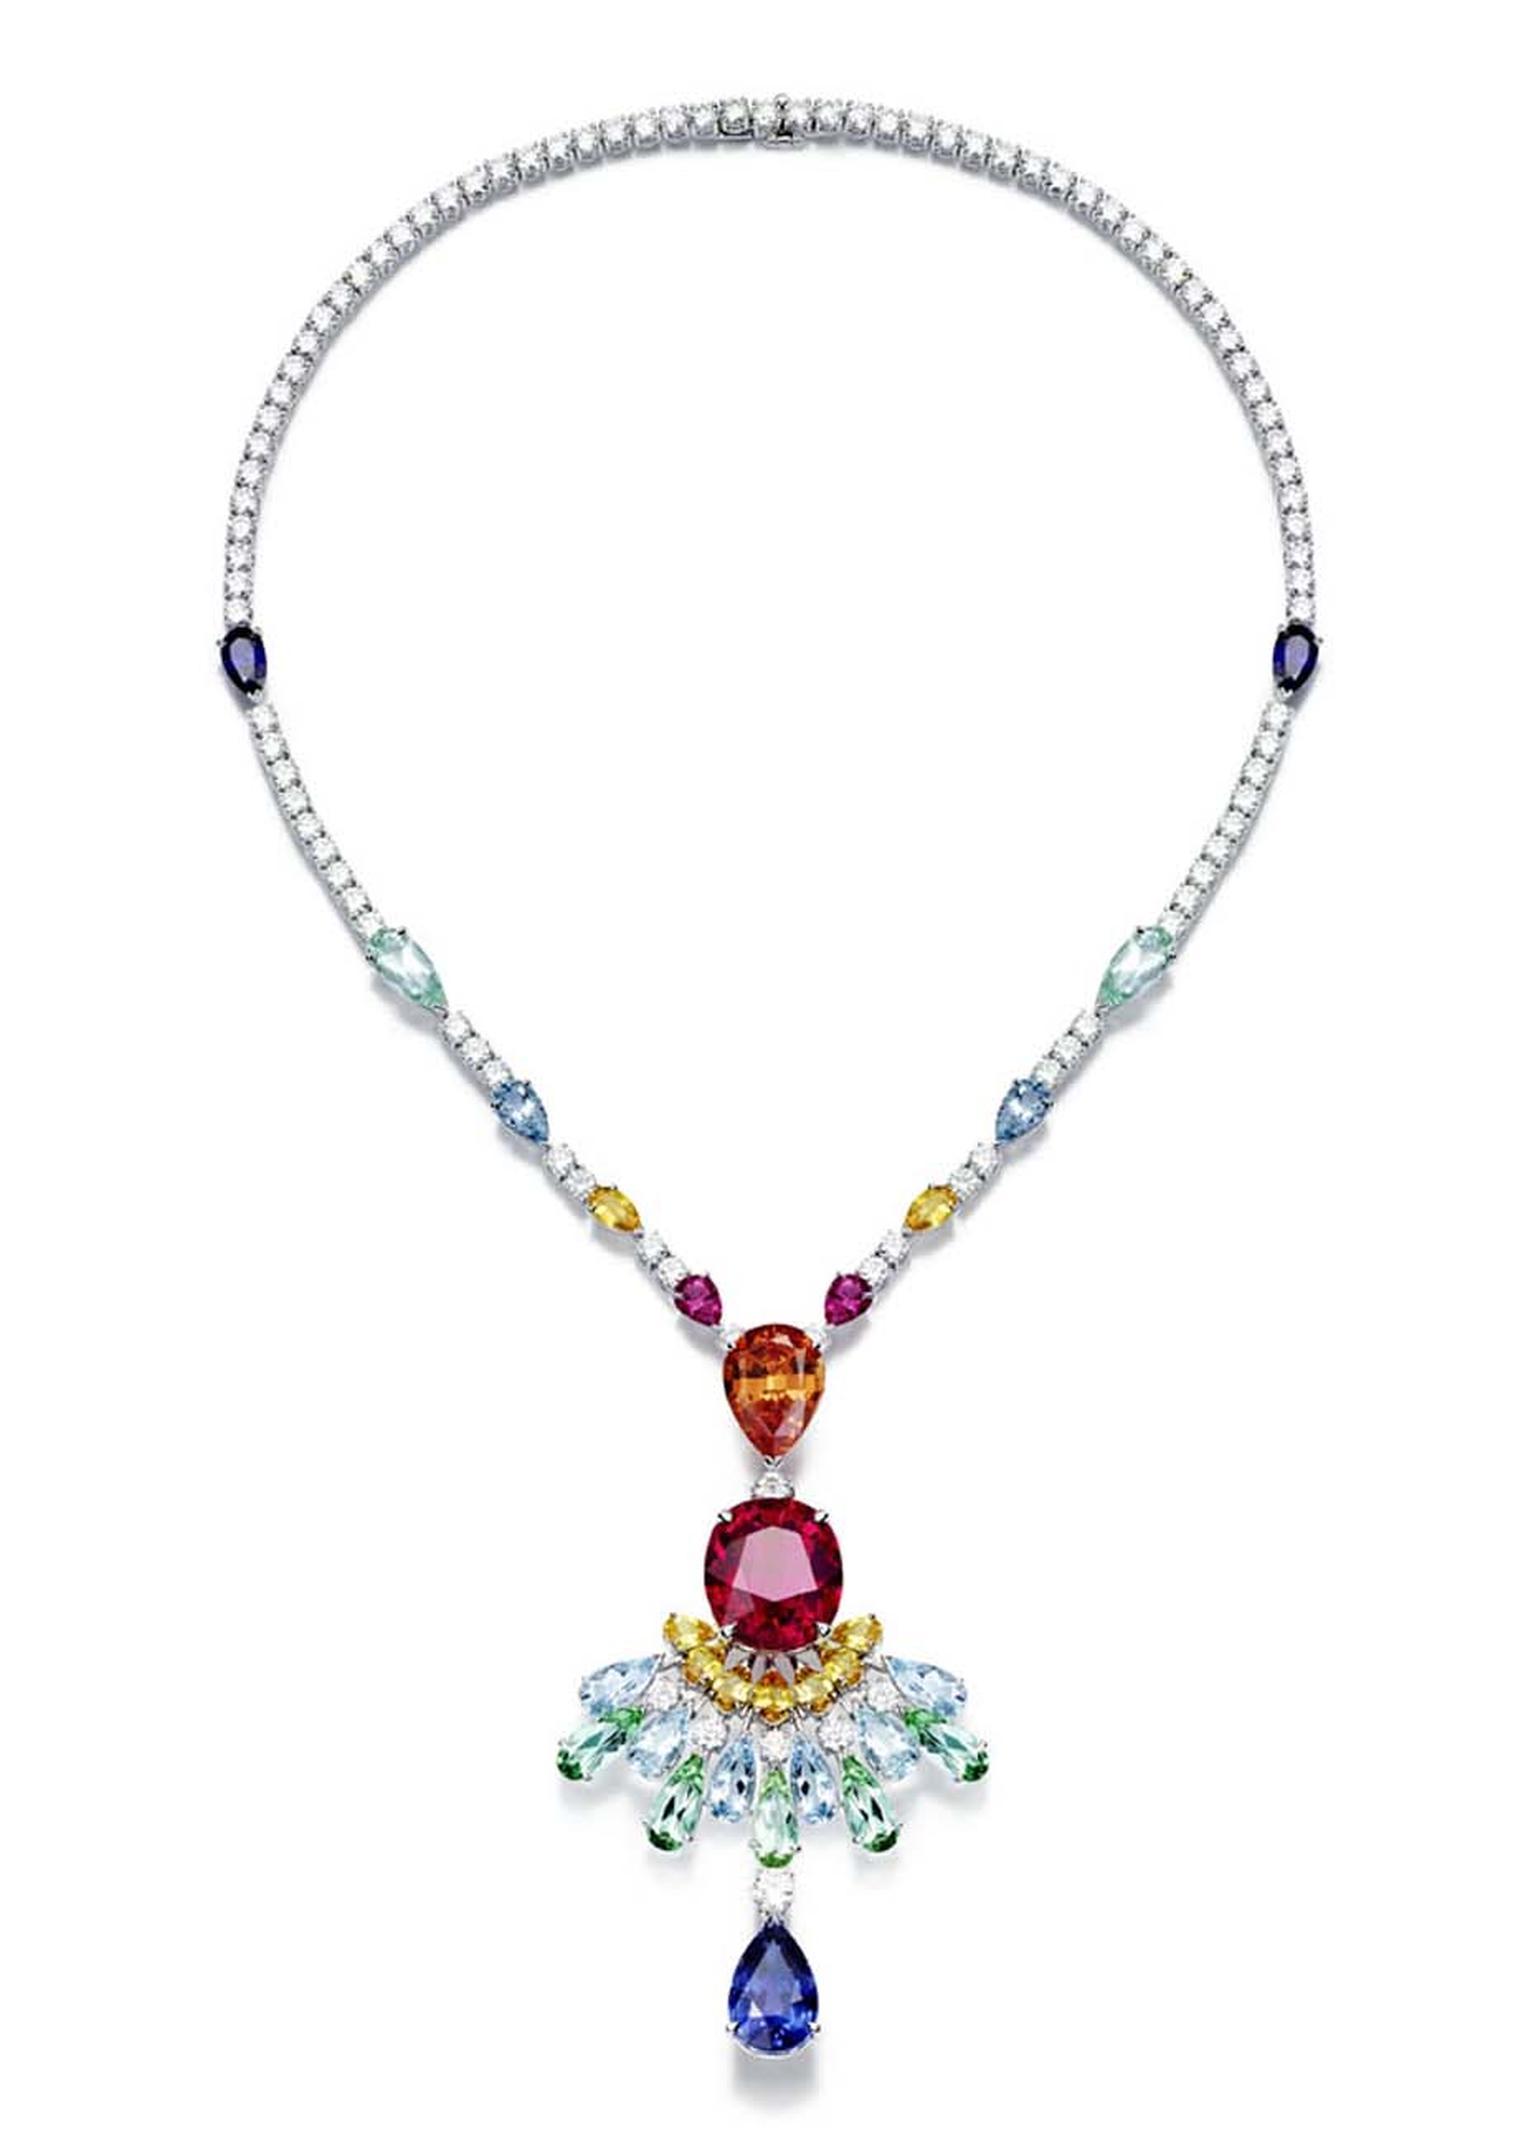 Piaget Rose Passion necklace set with an array of vivid gemstones, including aquamarines, rubellites and topaz